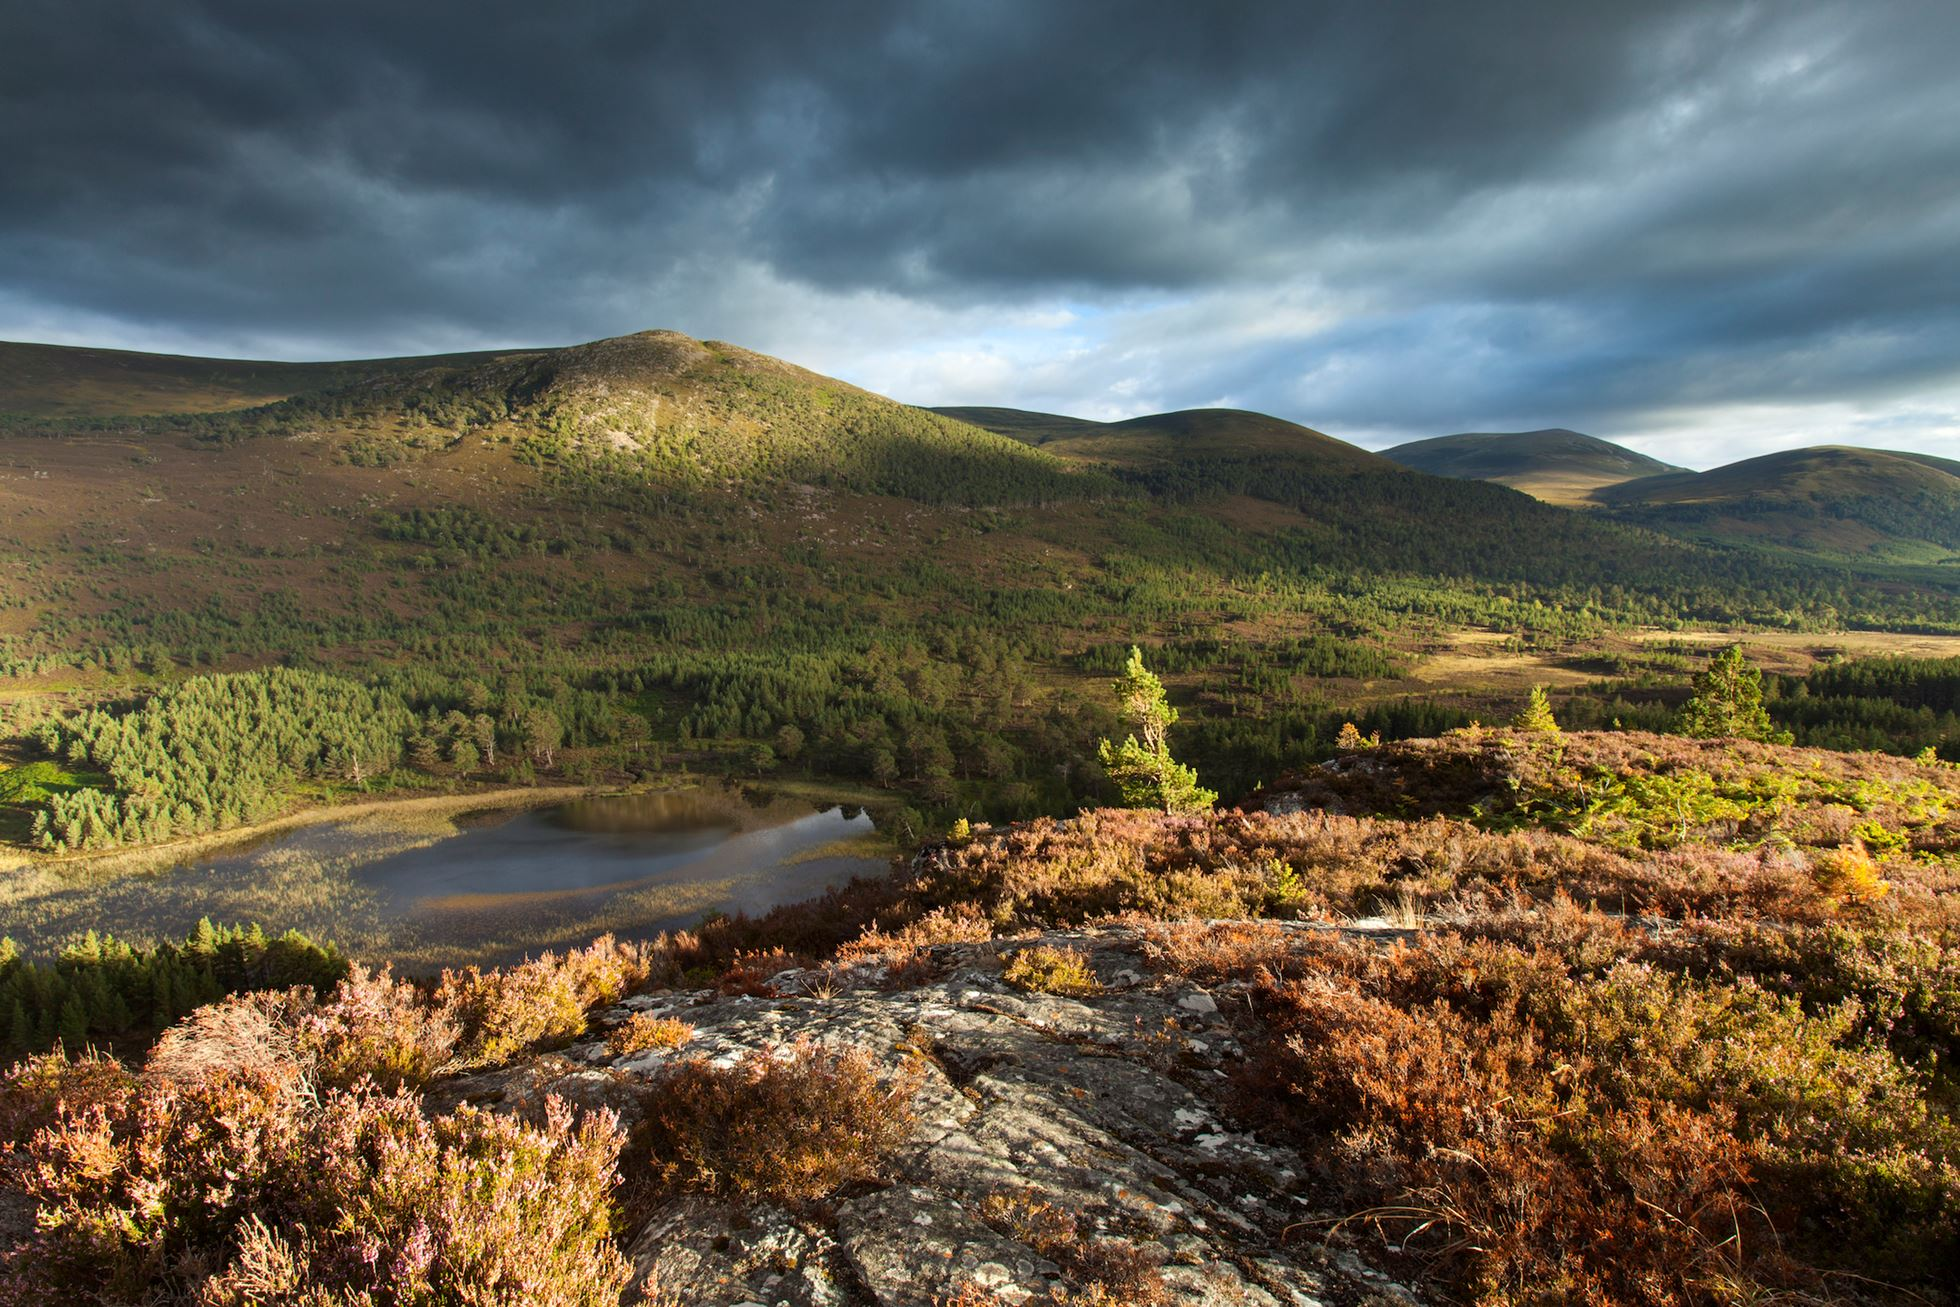 Elevated view over lochs and pine forest, Rothiemurchus, Cairngorms National Park, Scotland